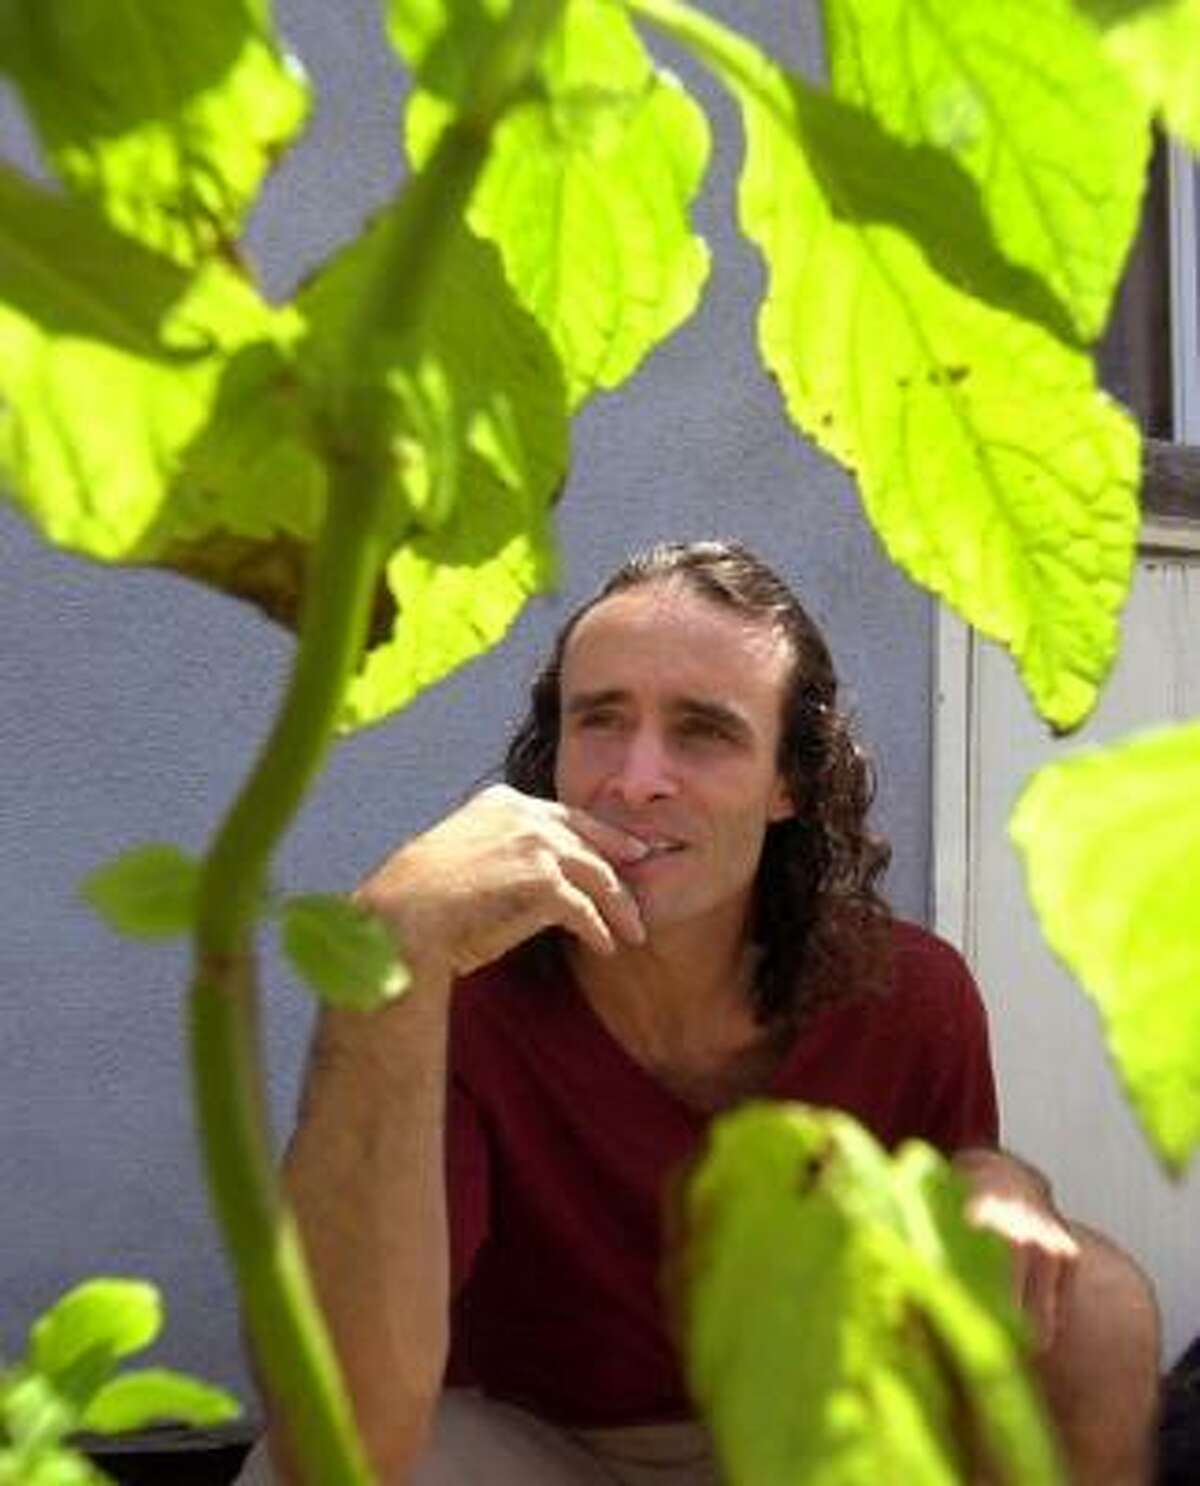 In an undated photo, botanist Daniel Siebert poses with a Salvia divinorum plant outside his California home. This particular variant of the Salvia genus, which is part of the mint family, is known to cause psychedelic effects among users, including hallucinations and/or visions. It can be chewed, smoked or consumed via a tincture. 8th grade: 0.7 (0.1 change) 10th grade: 1.2 (-1.7 change) 12th grade: 1.9 (0.0 change)